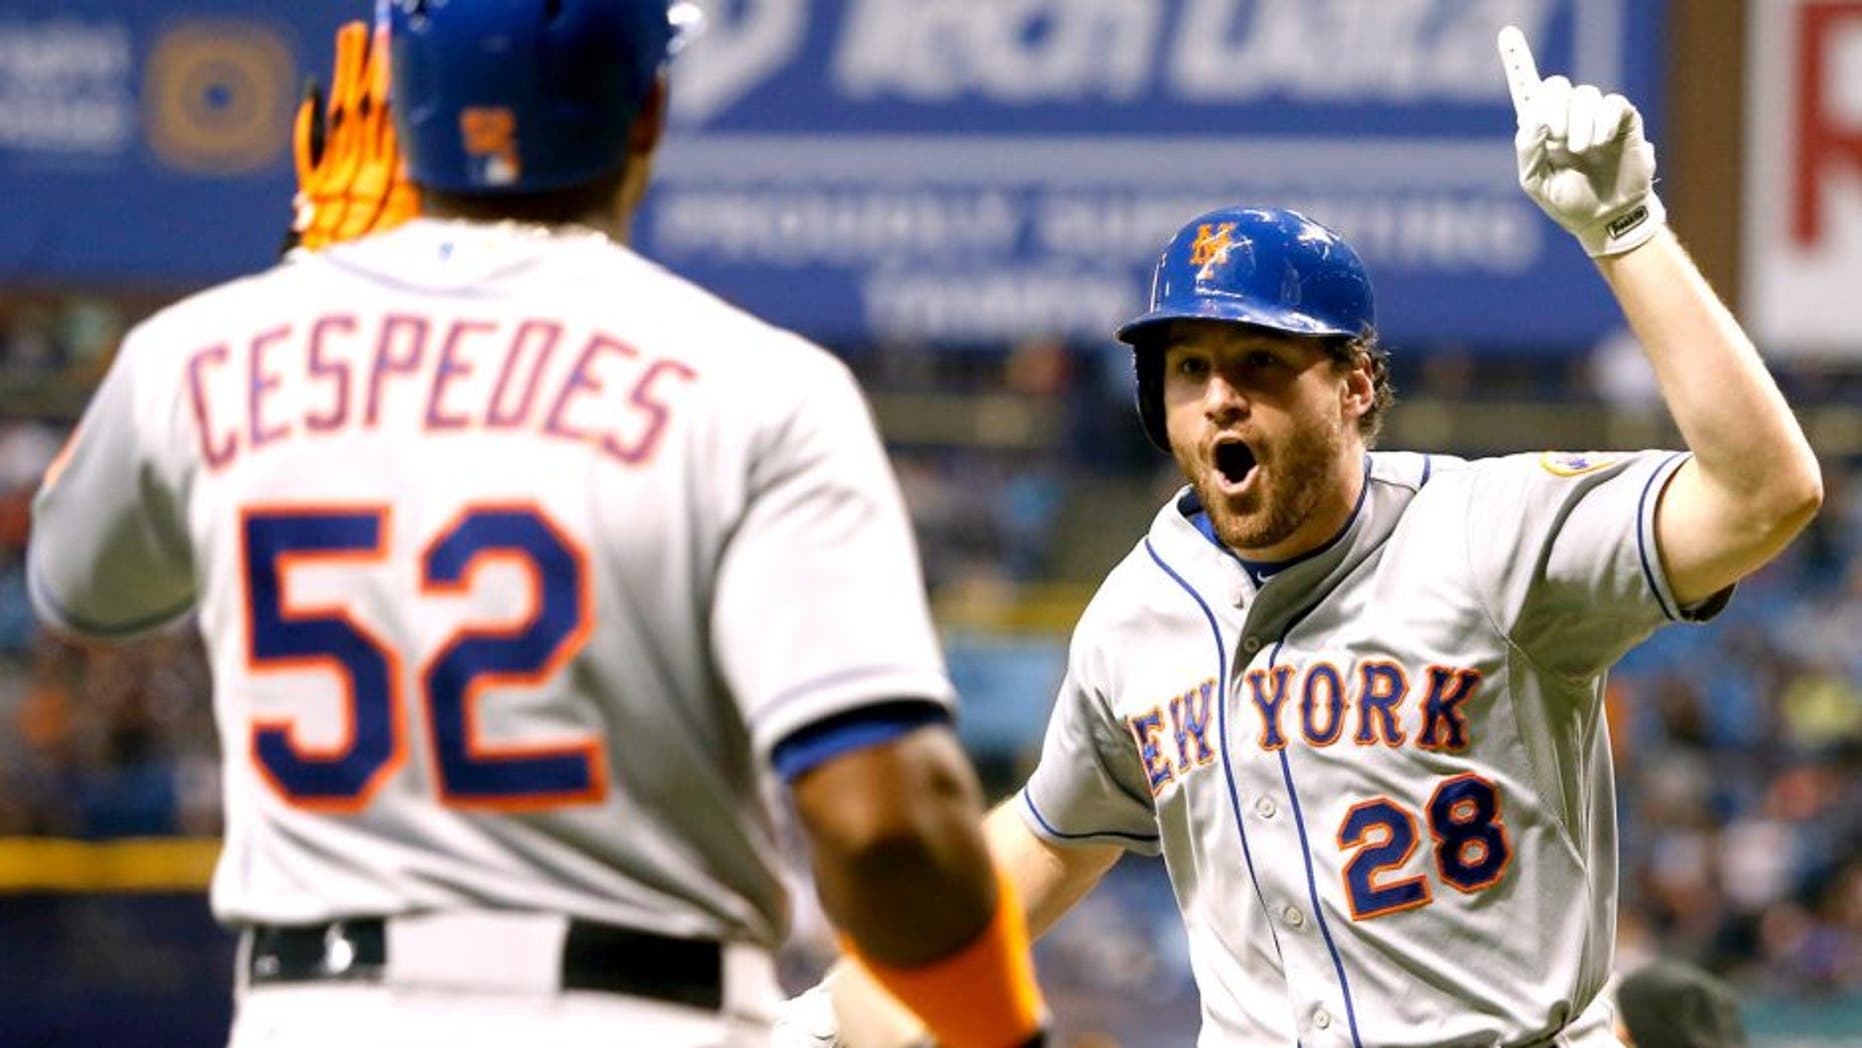 ST. PETERSBURG, FL - AUGUST 7: Daniel Murphy #28 of the New York Mets celebrates his home run with teammate Yoenis Cespedes #52 during the eighth inning of a game against the Tampa Bay Rays on August 7, 2015 at Tropicana Field in St. Petersburg, Florida. (Photo by Brian Blanco/Getty Images)